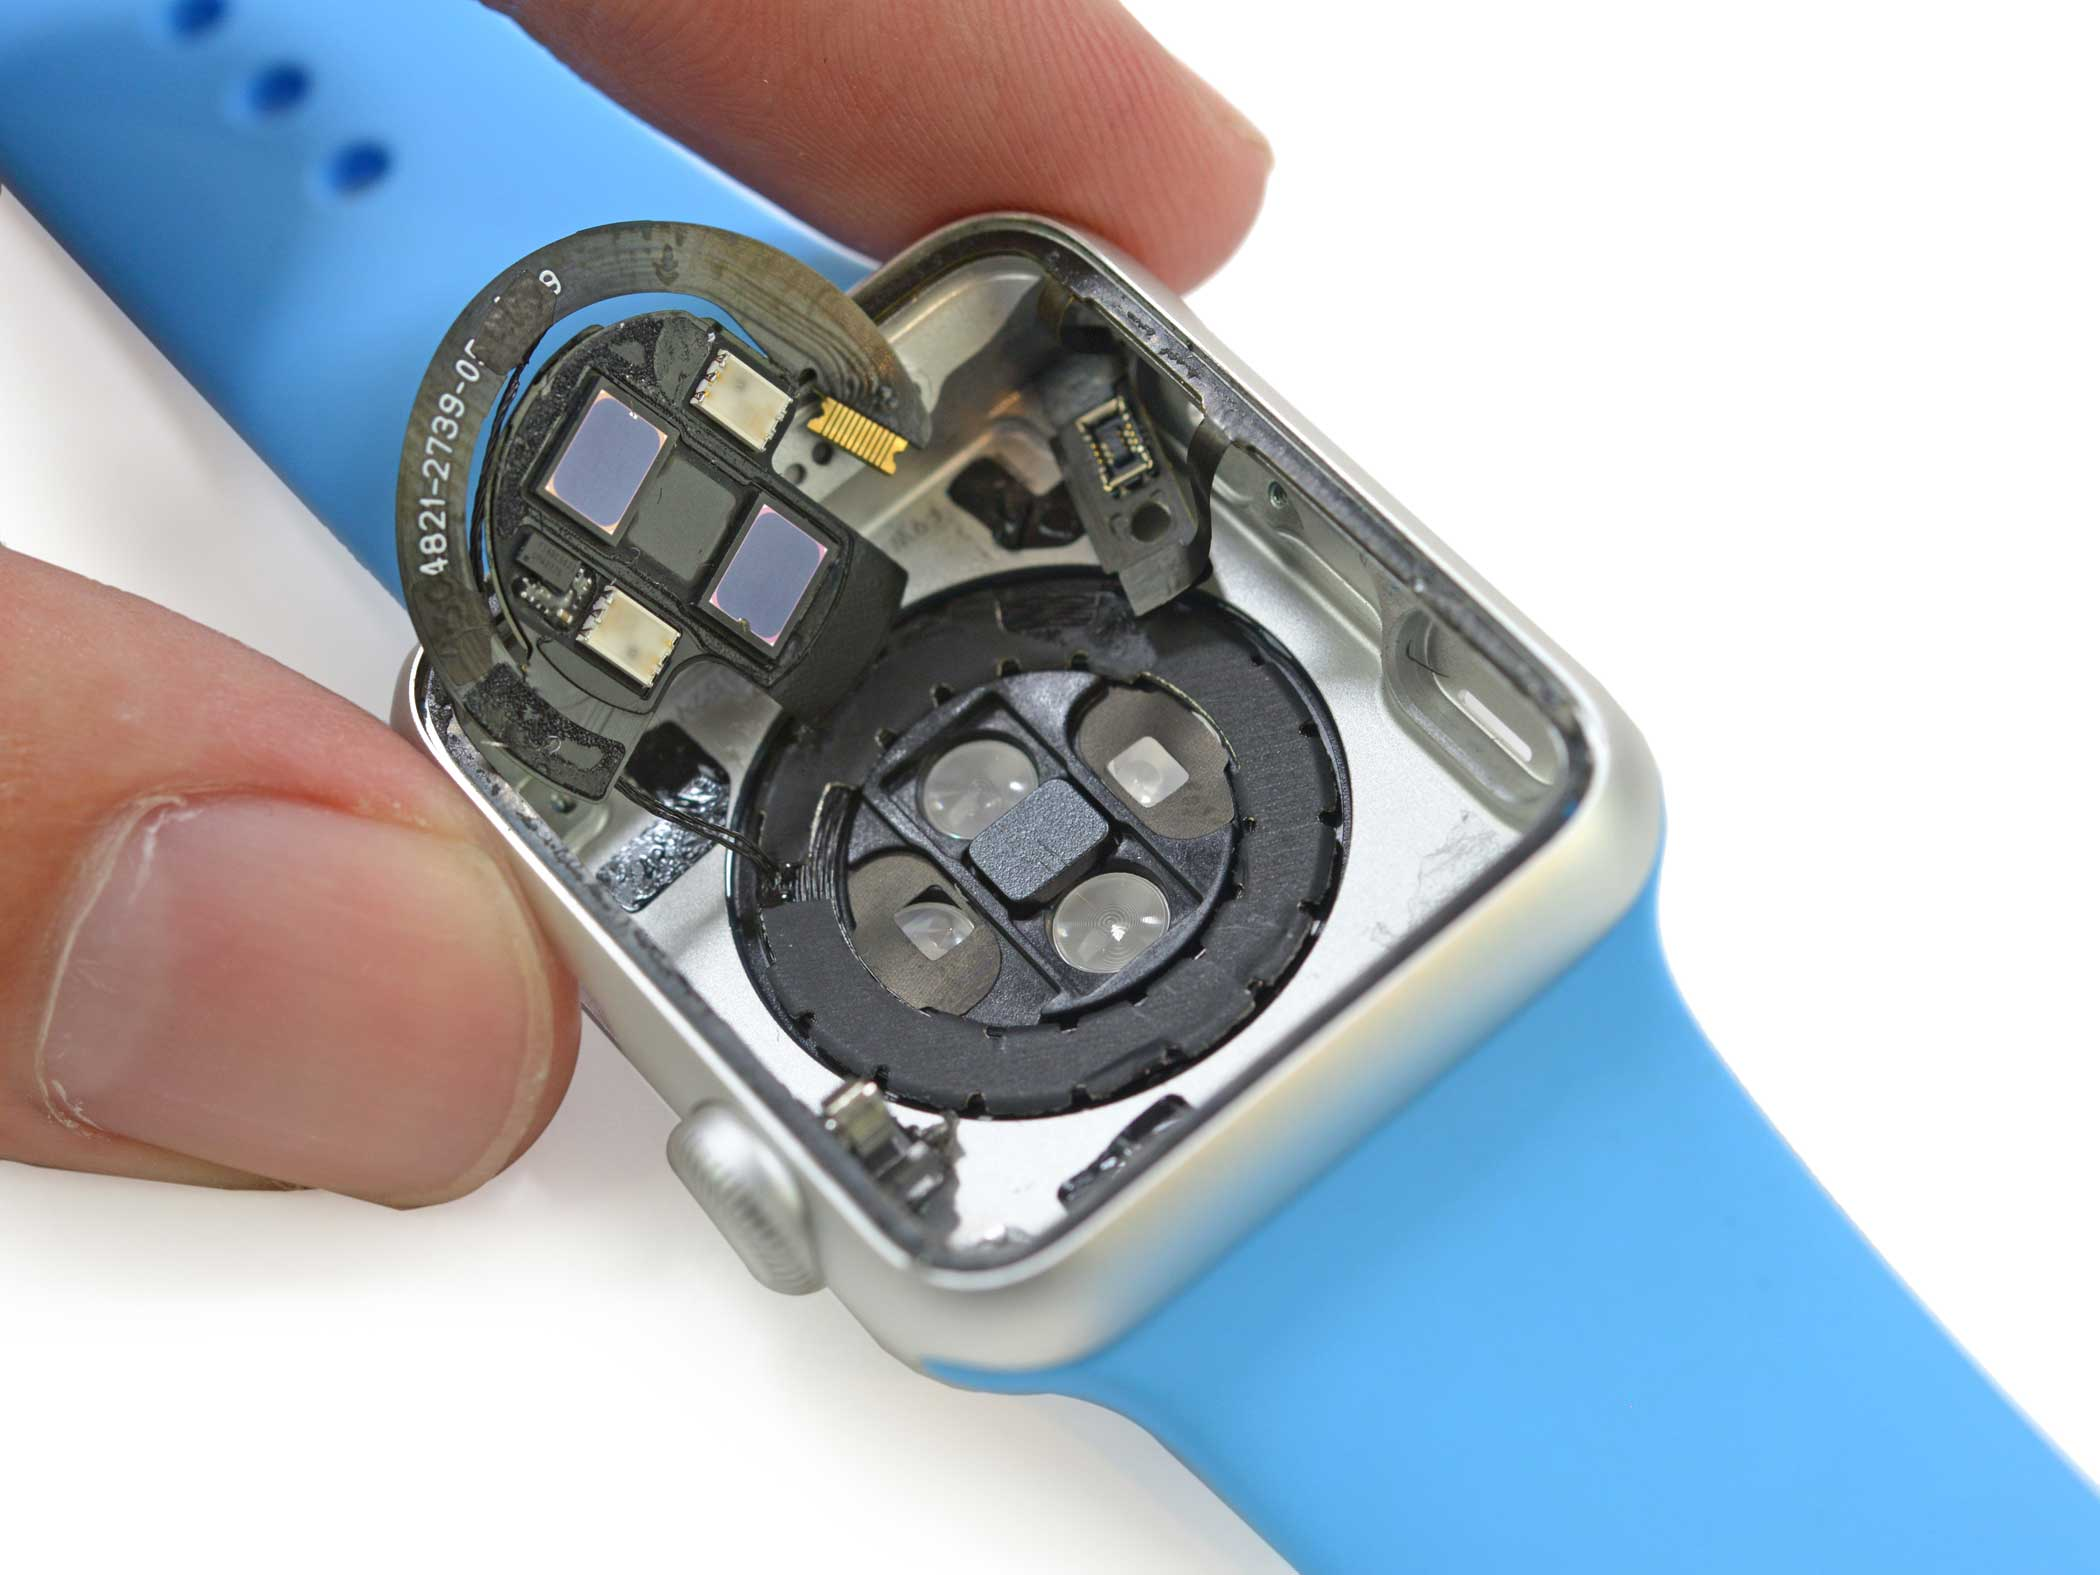 At the bottom of the watch case lies the plethysmograph that serves as the Apple Watch's heart rate monitor. The device may also be able to measure a user's blood oxygen level, but Apple hasn't promoted this feature, possibly due to FDA regulations